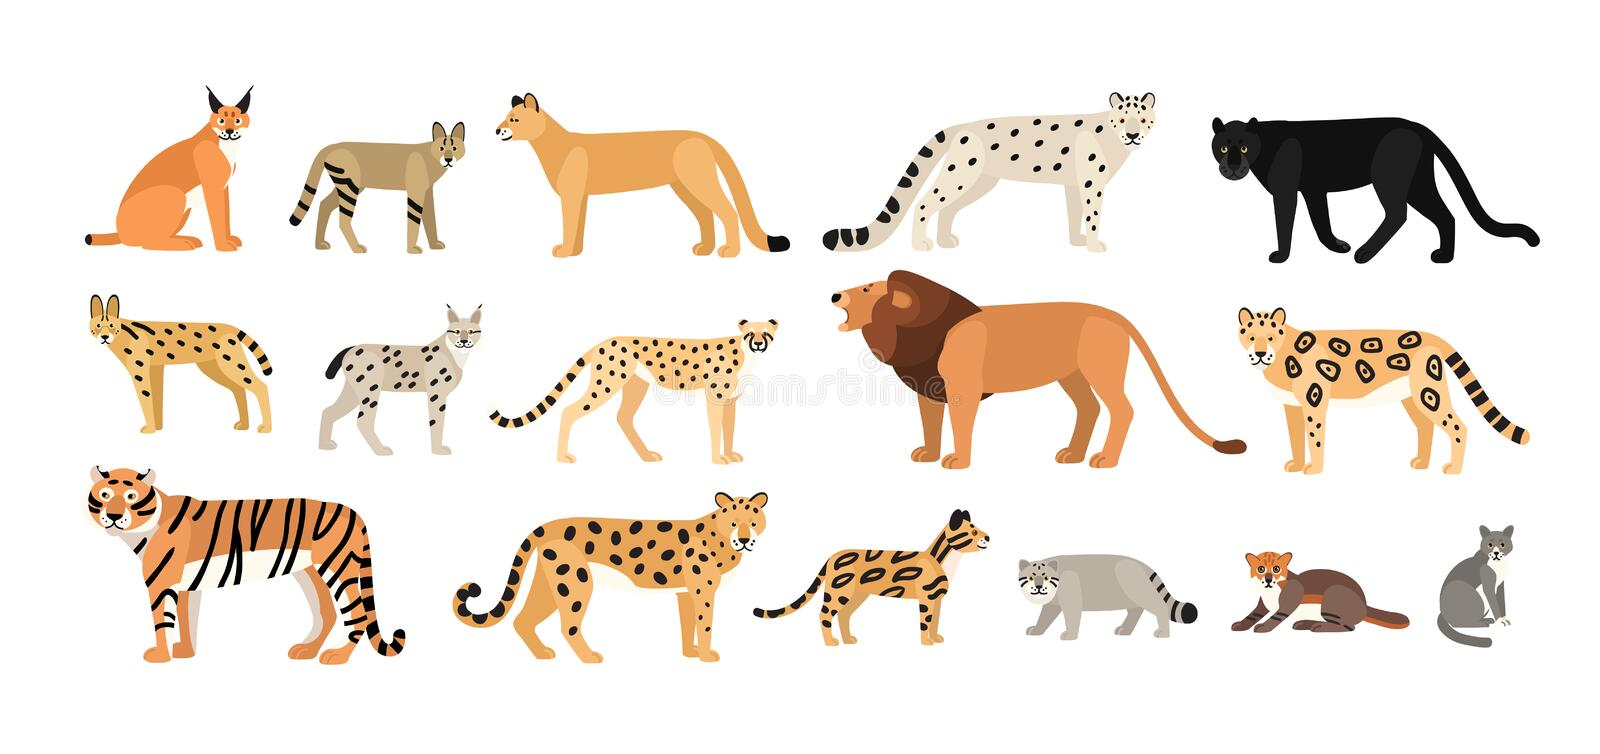 Collection of different wild and domestic cats. Exotic animals vector illustration